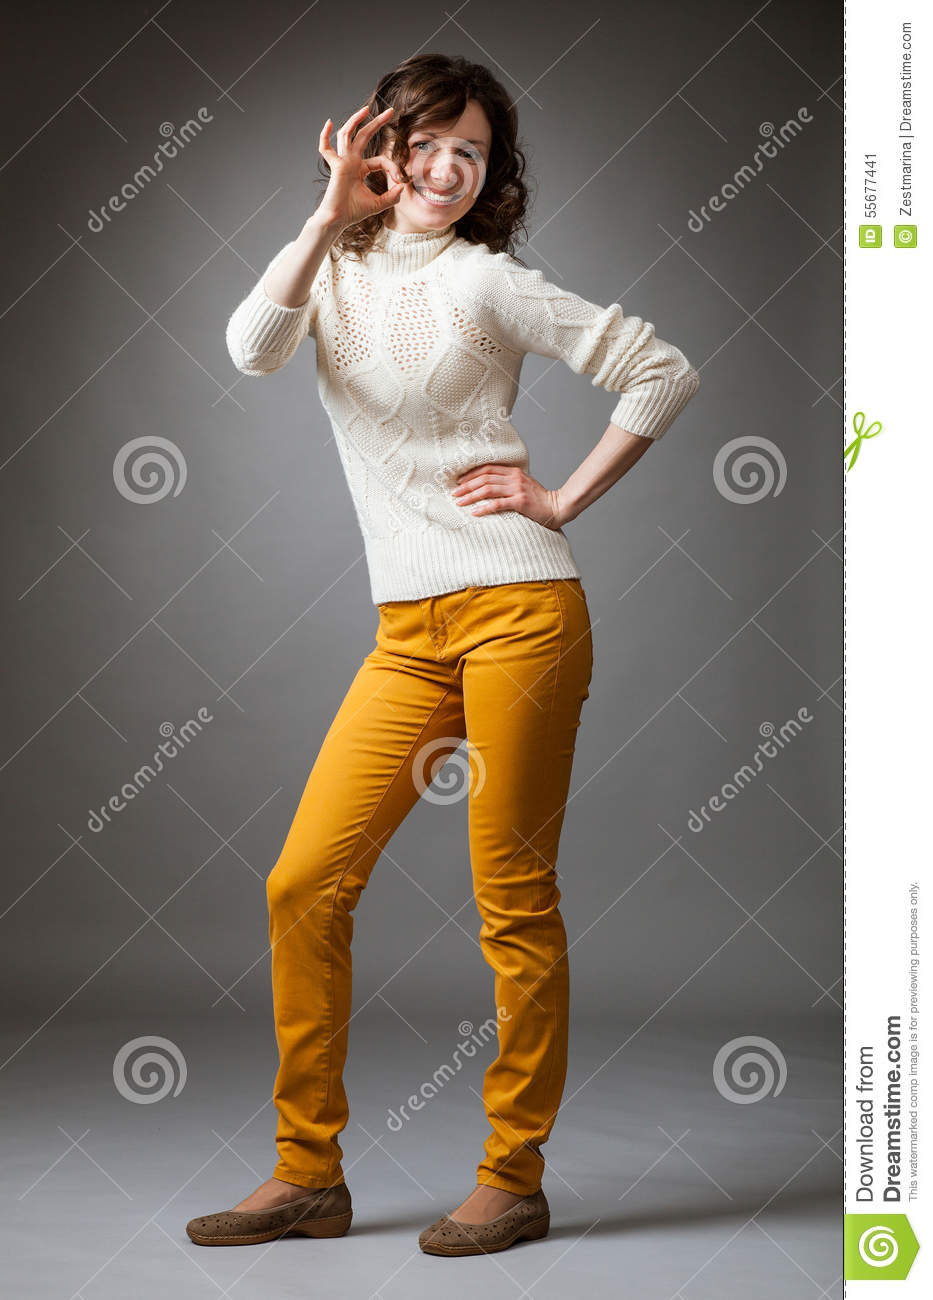 Cute Girl Giving OK Sign Royalty Free Stock Photo - Image